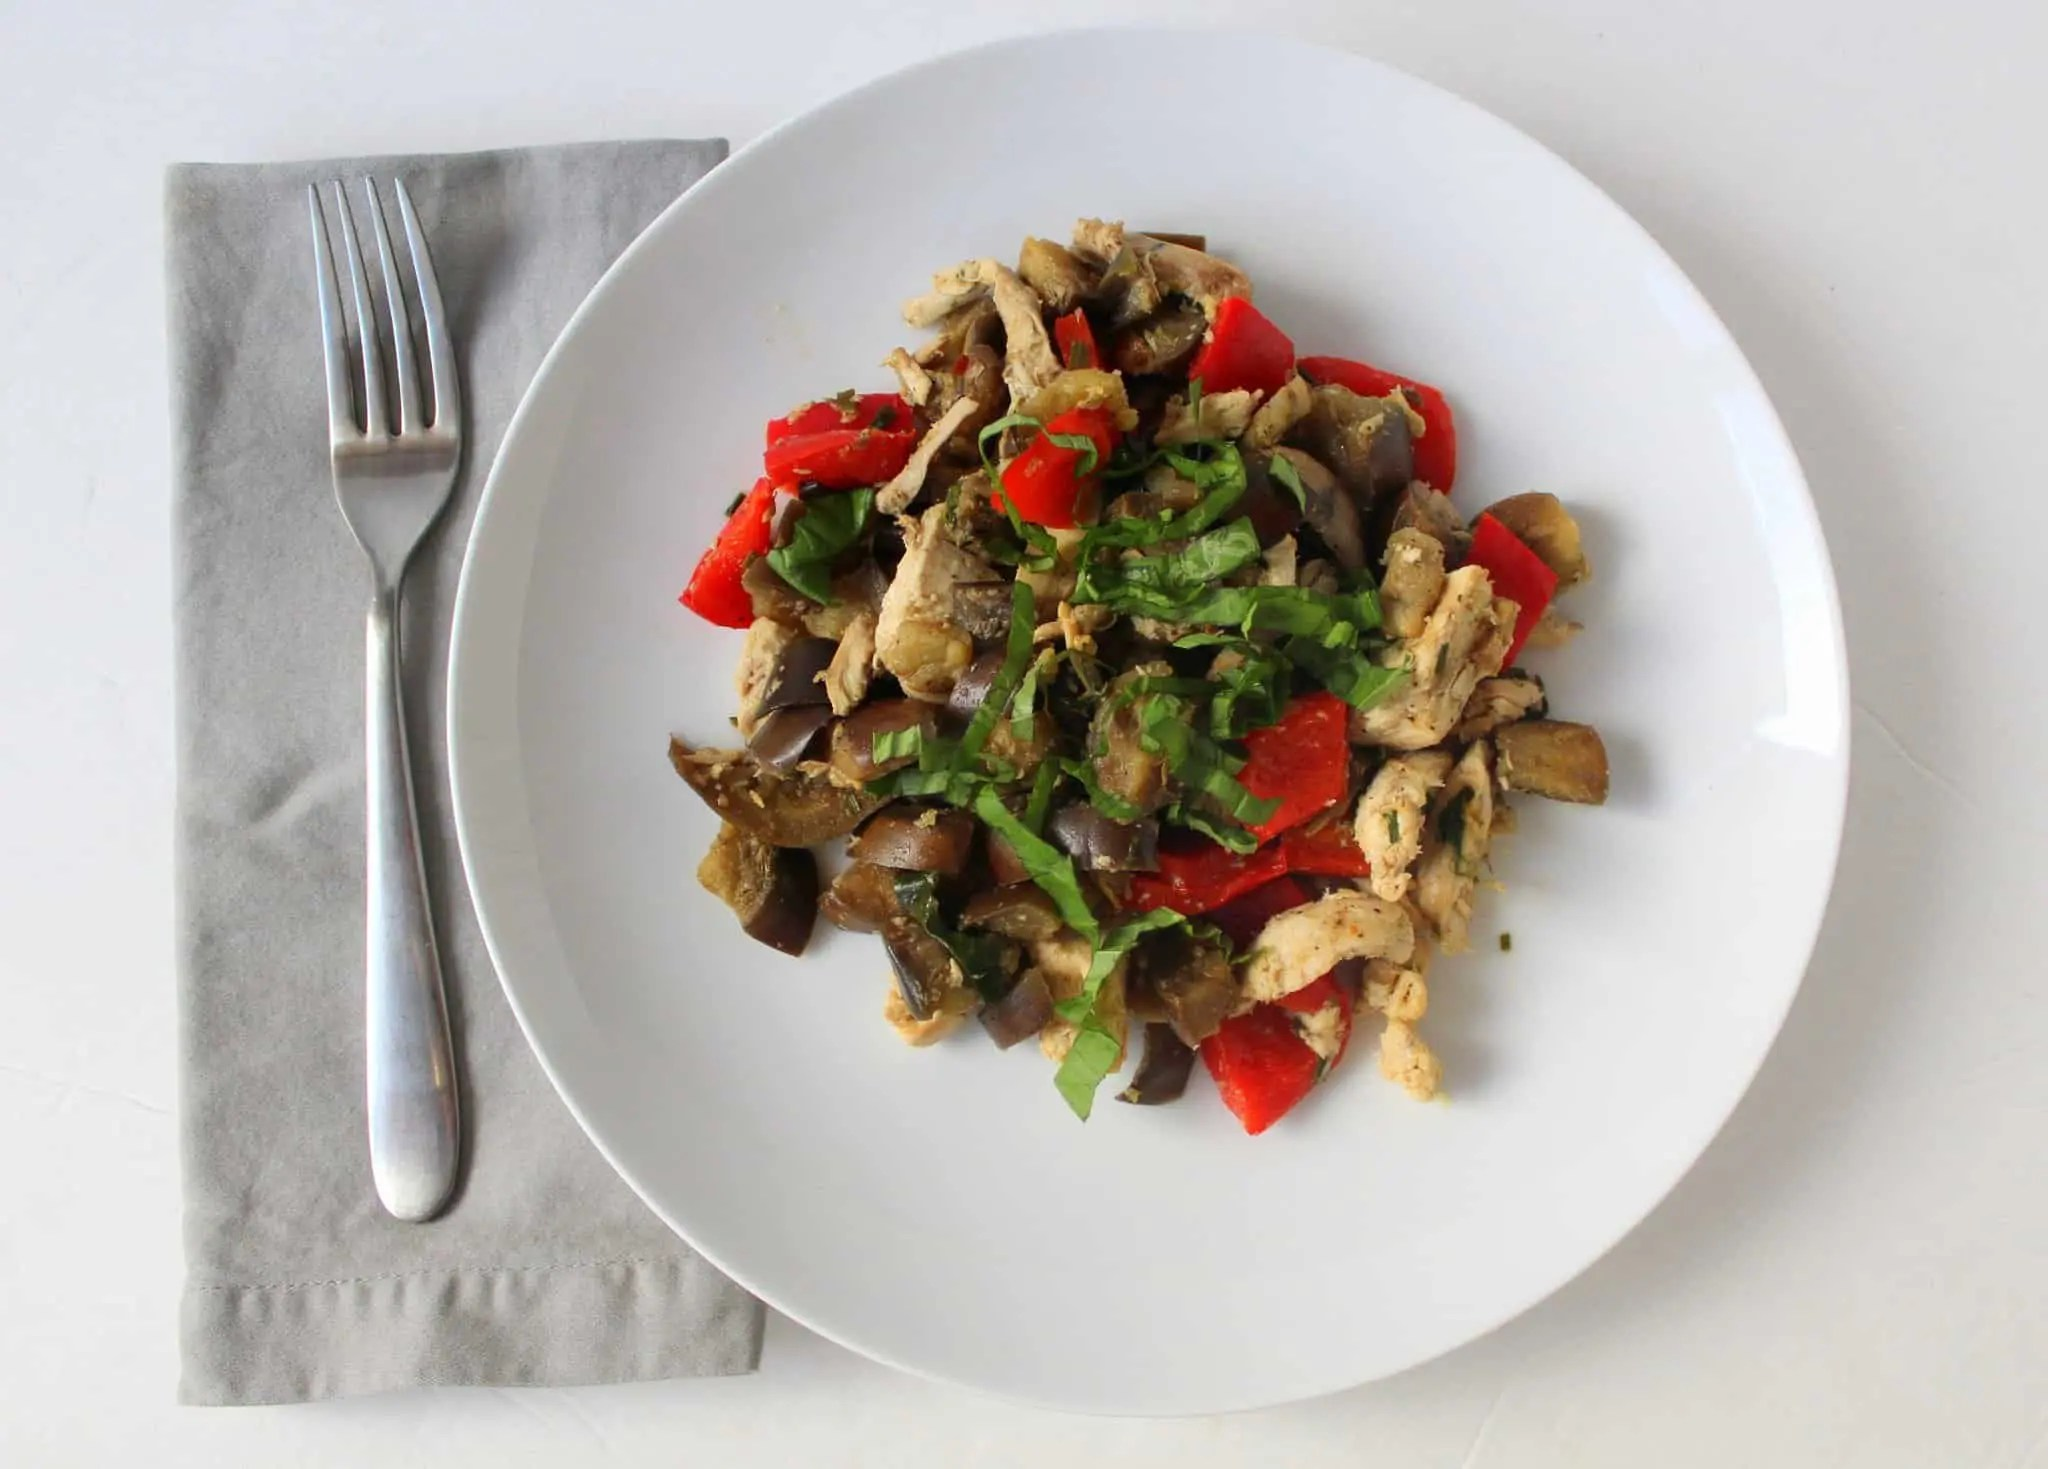 Ginger Basil Stir Fry | Treble in the Kitchen